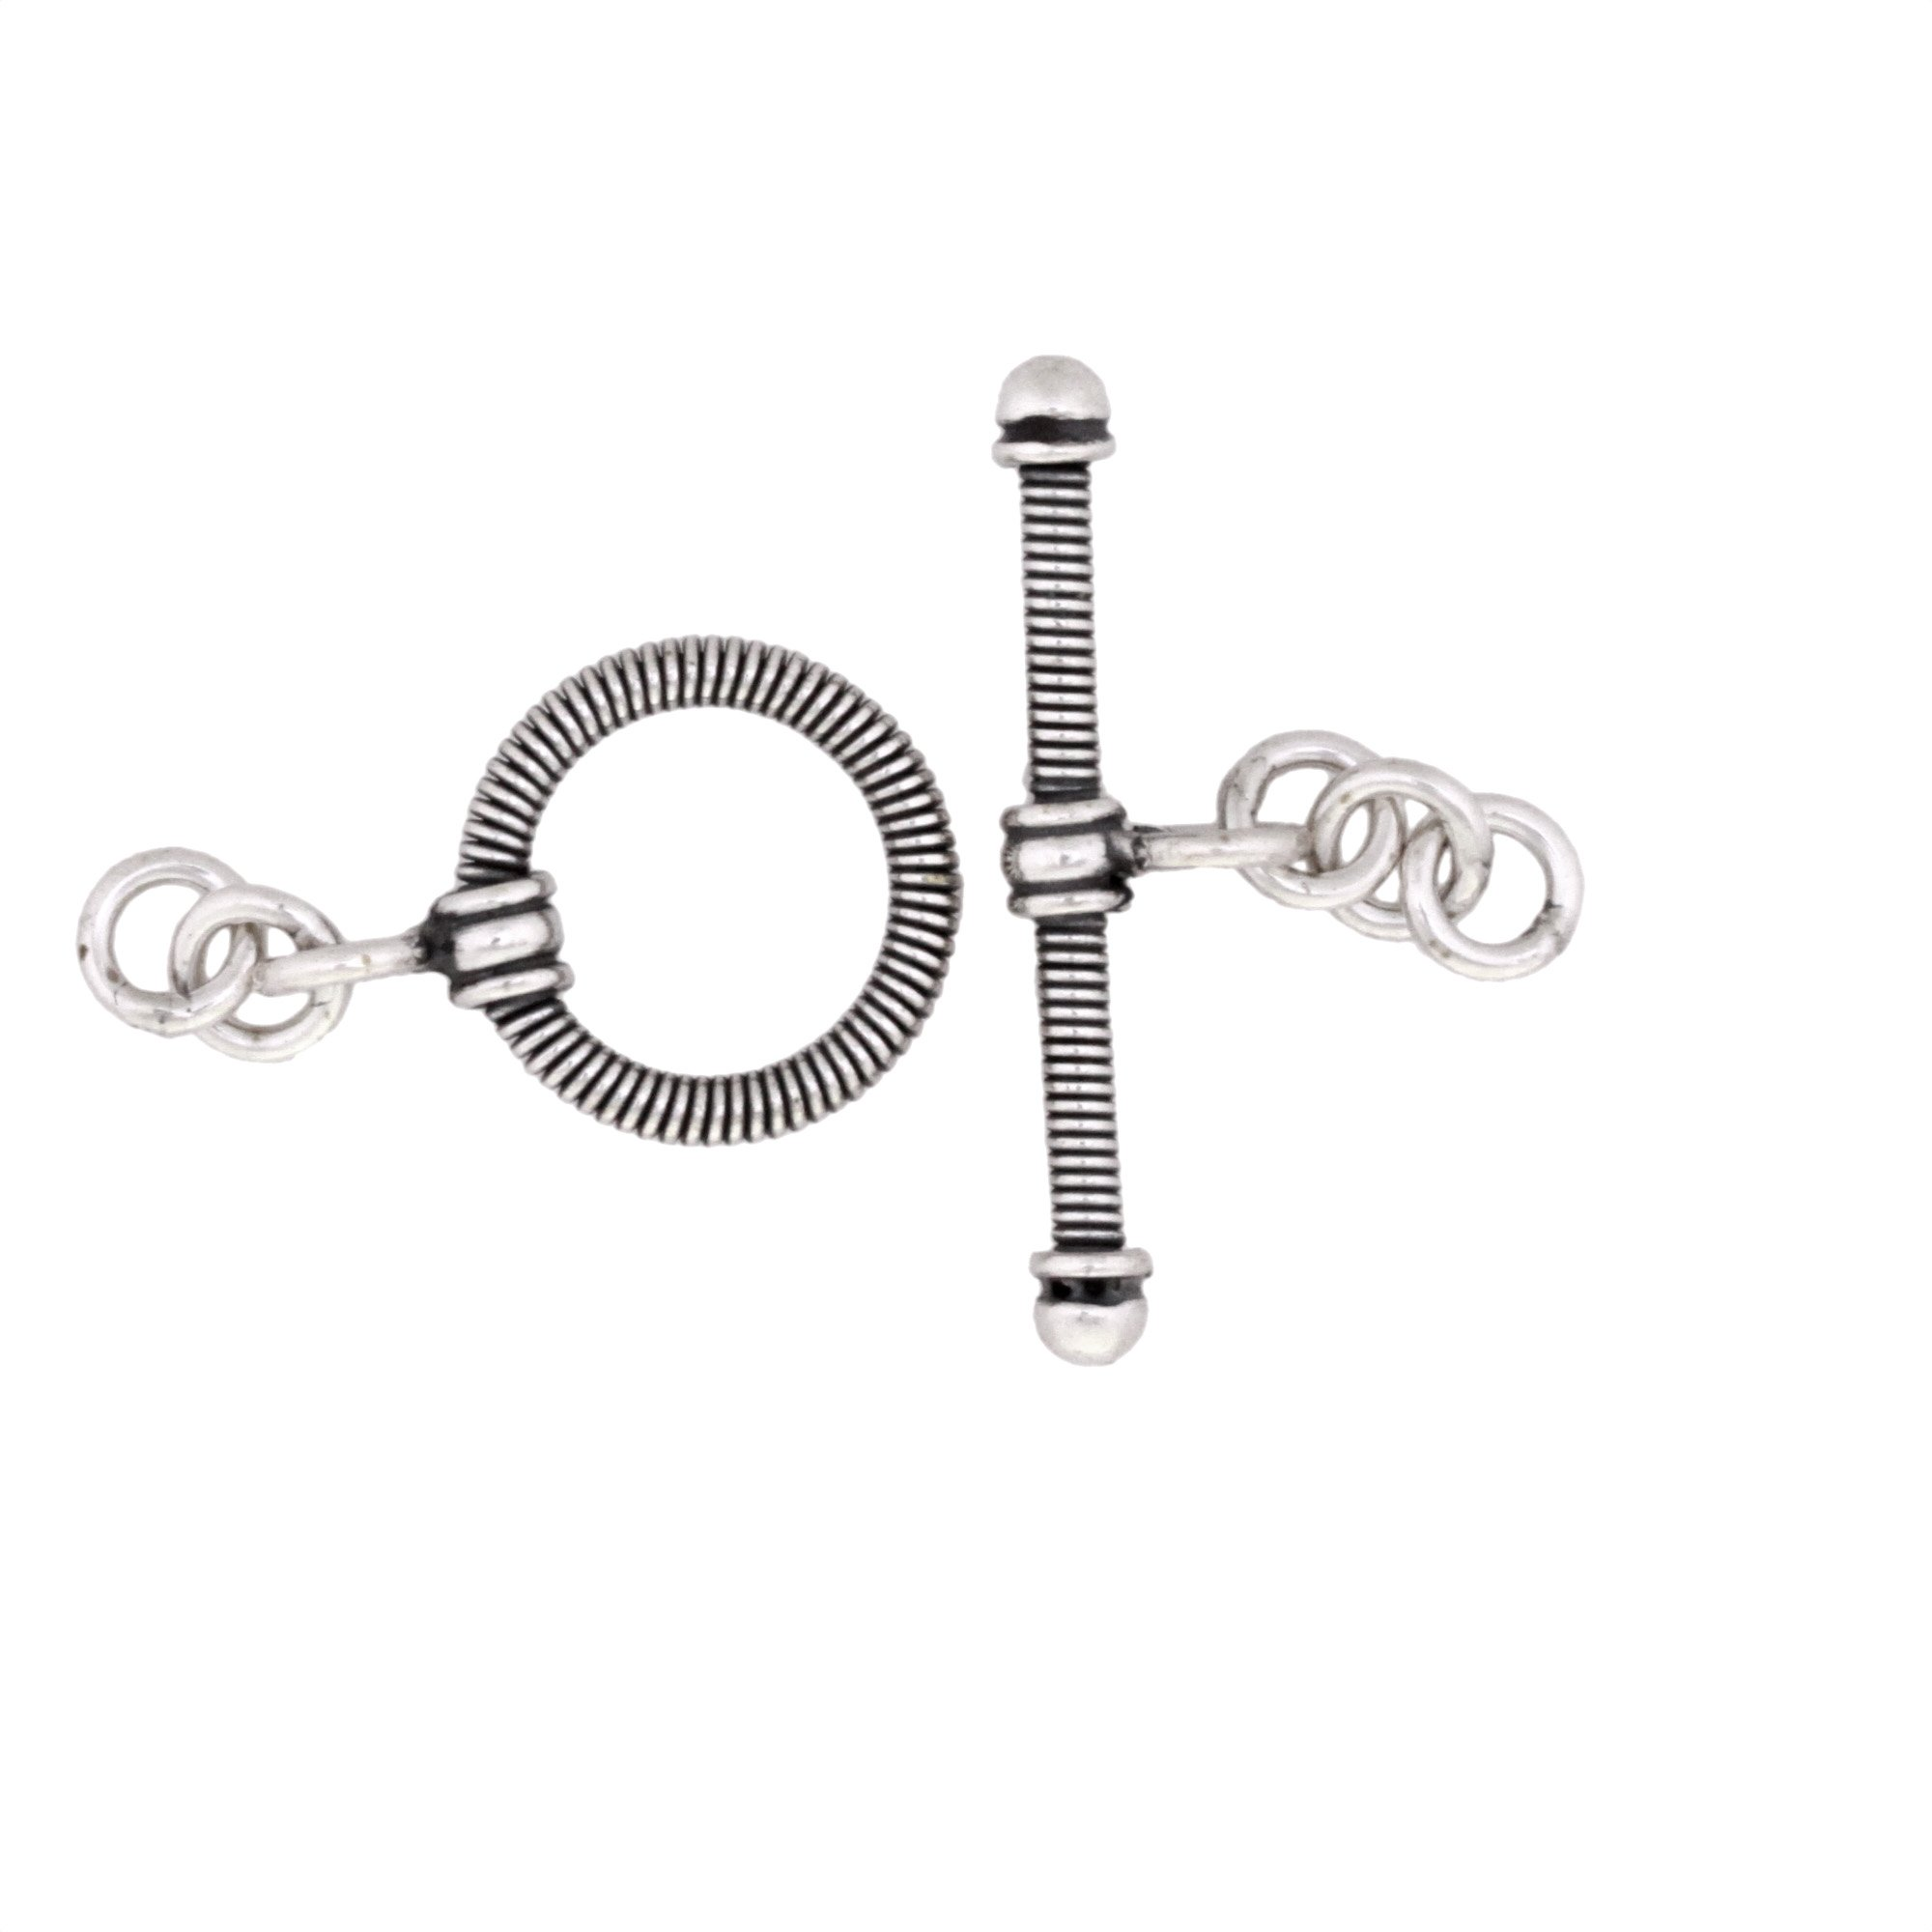 Silver Toggle Clasp 19 mm Antique Bali Style 925 Sterling Toggle Clasp Vintage Style Sterling Silver Finding Toggle Clasp 617-SCL19